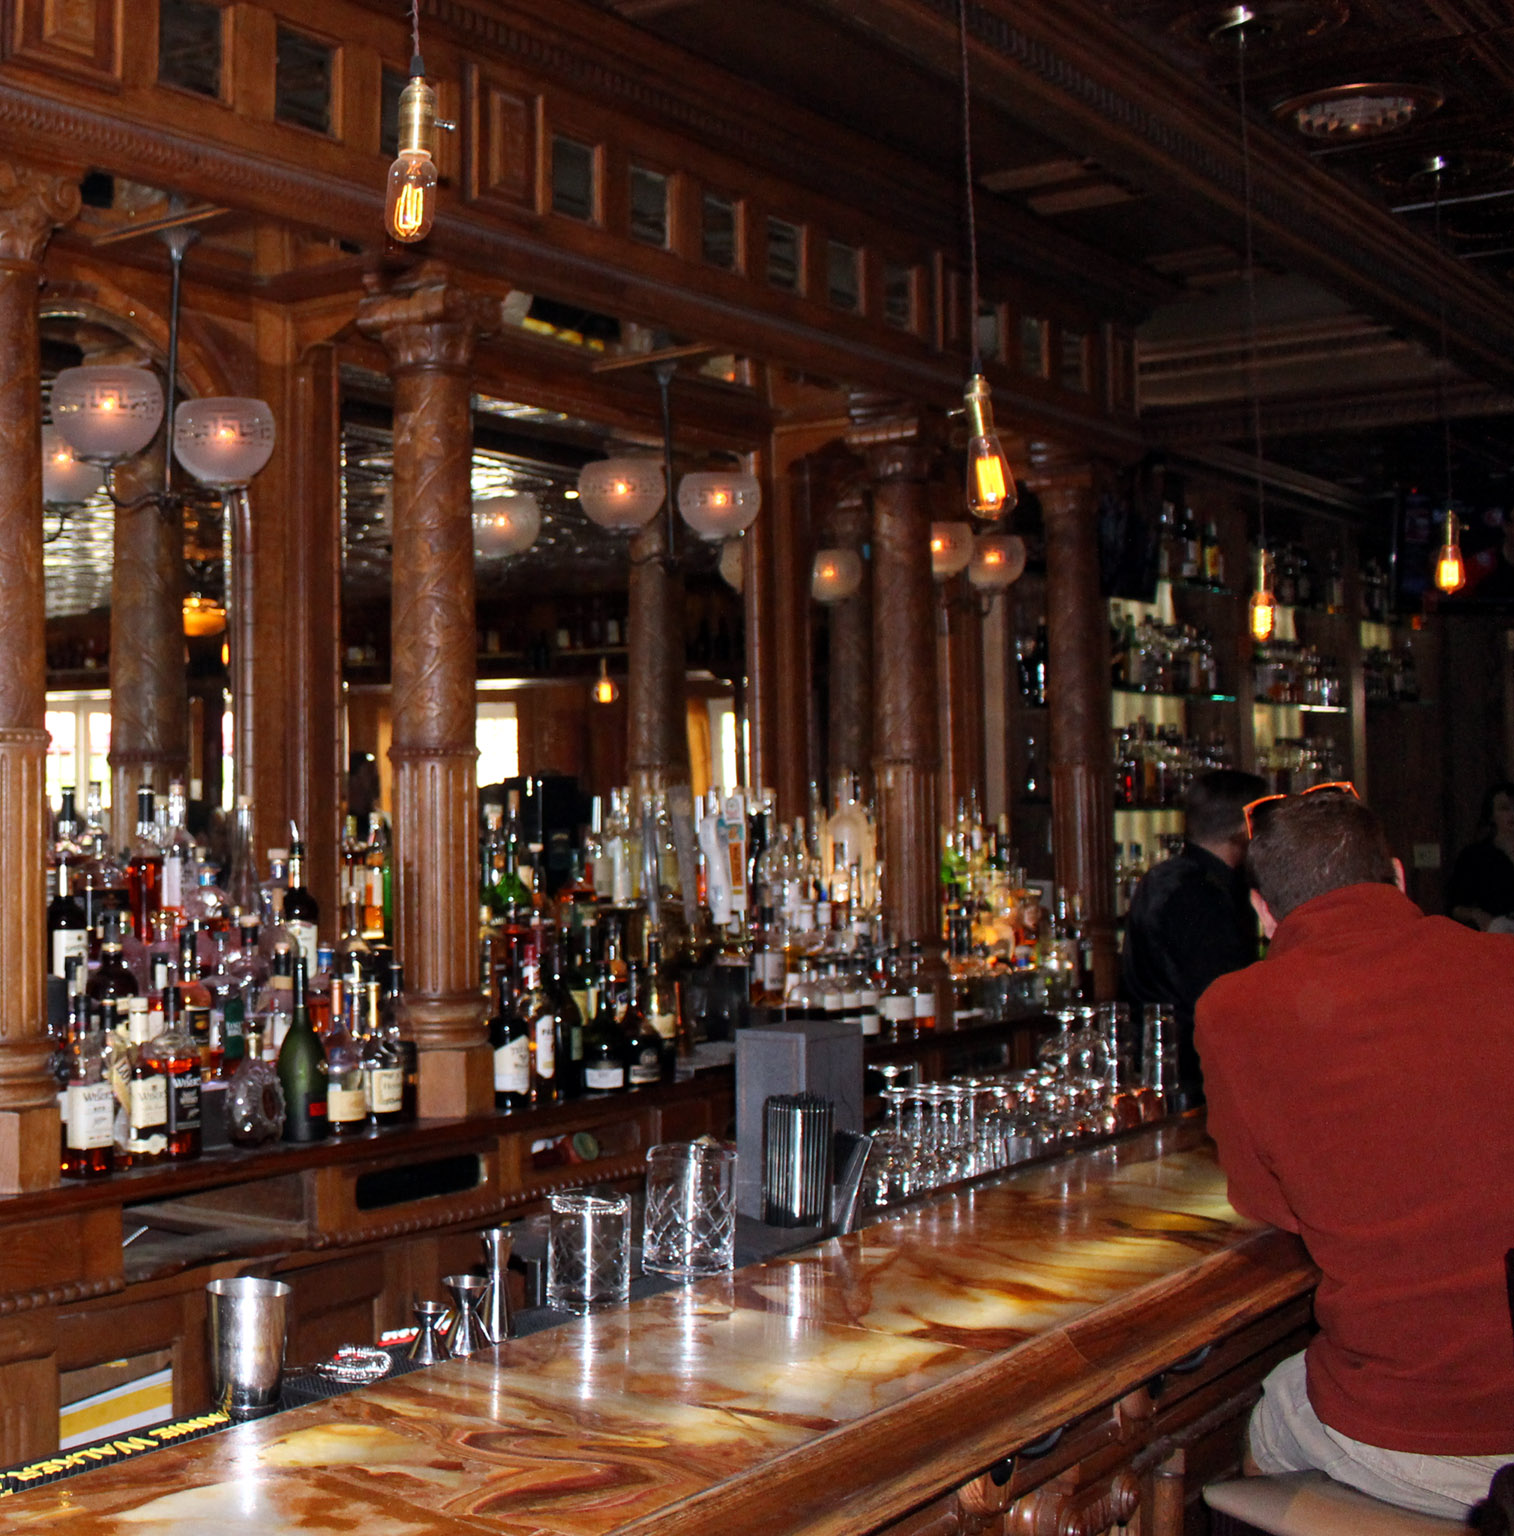 The Bar at the Stanley Hotel